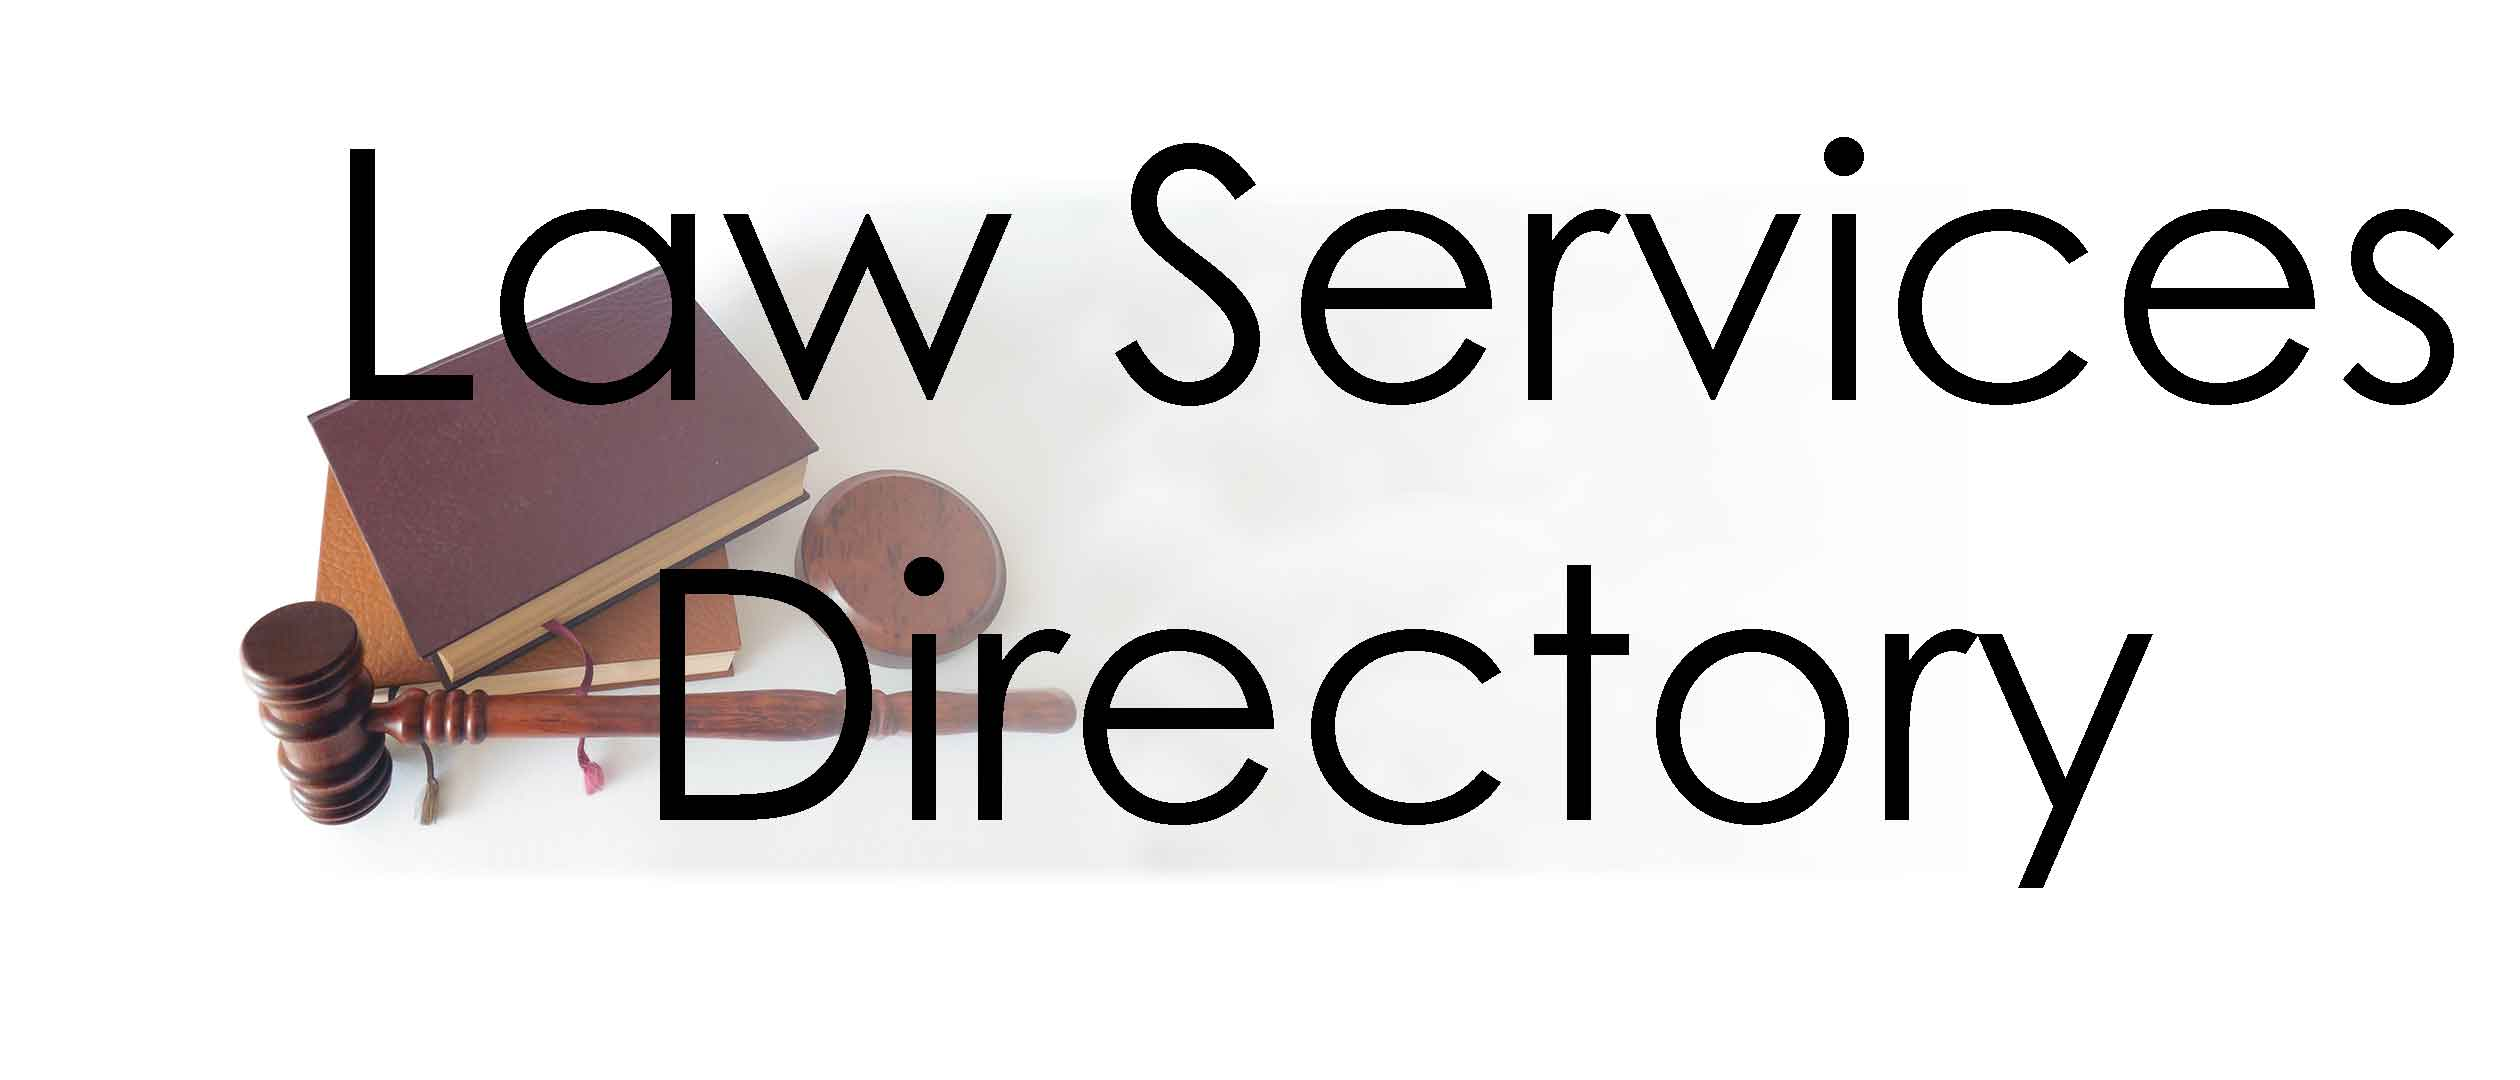 Law Services Directory